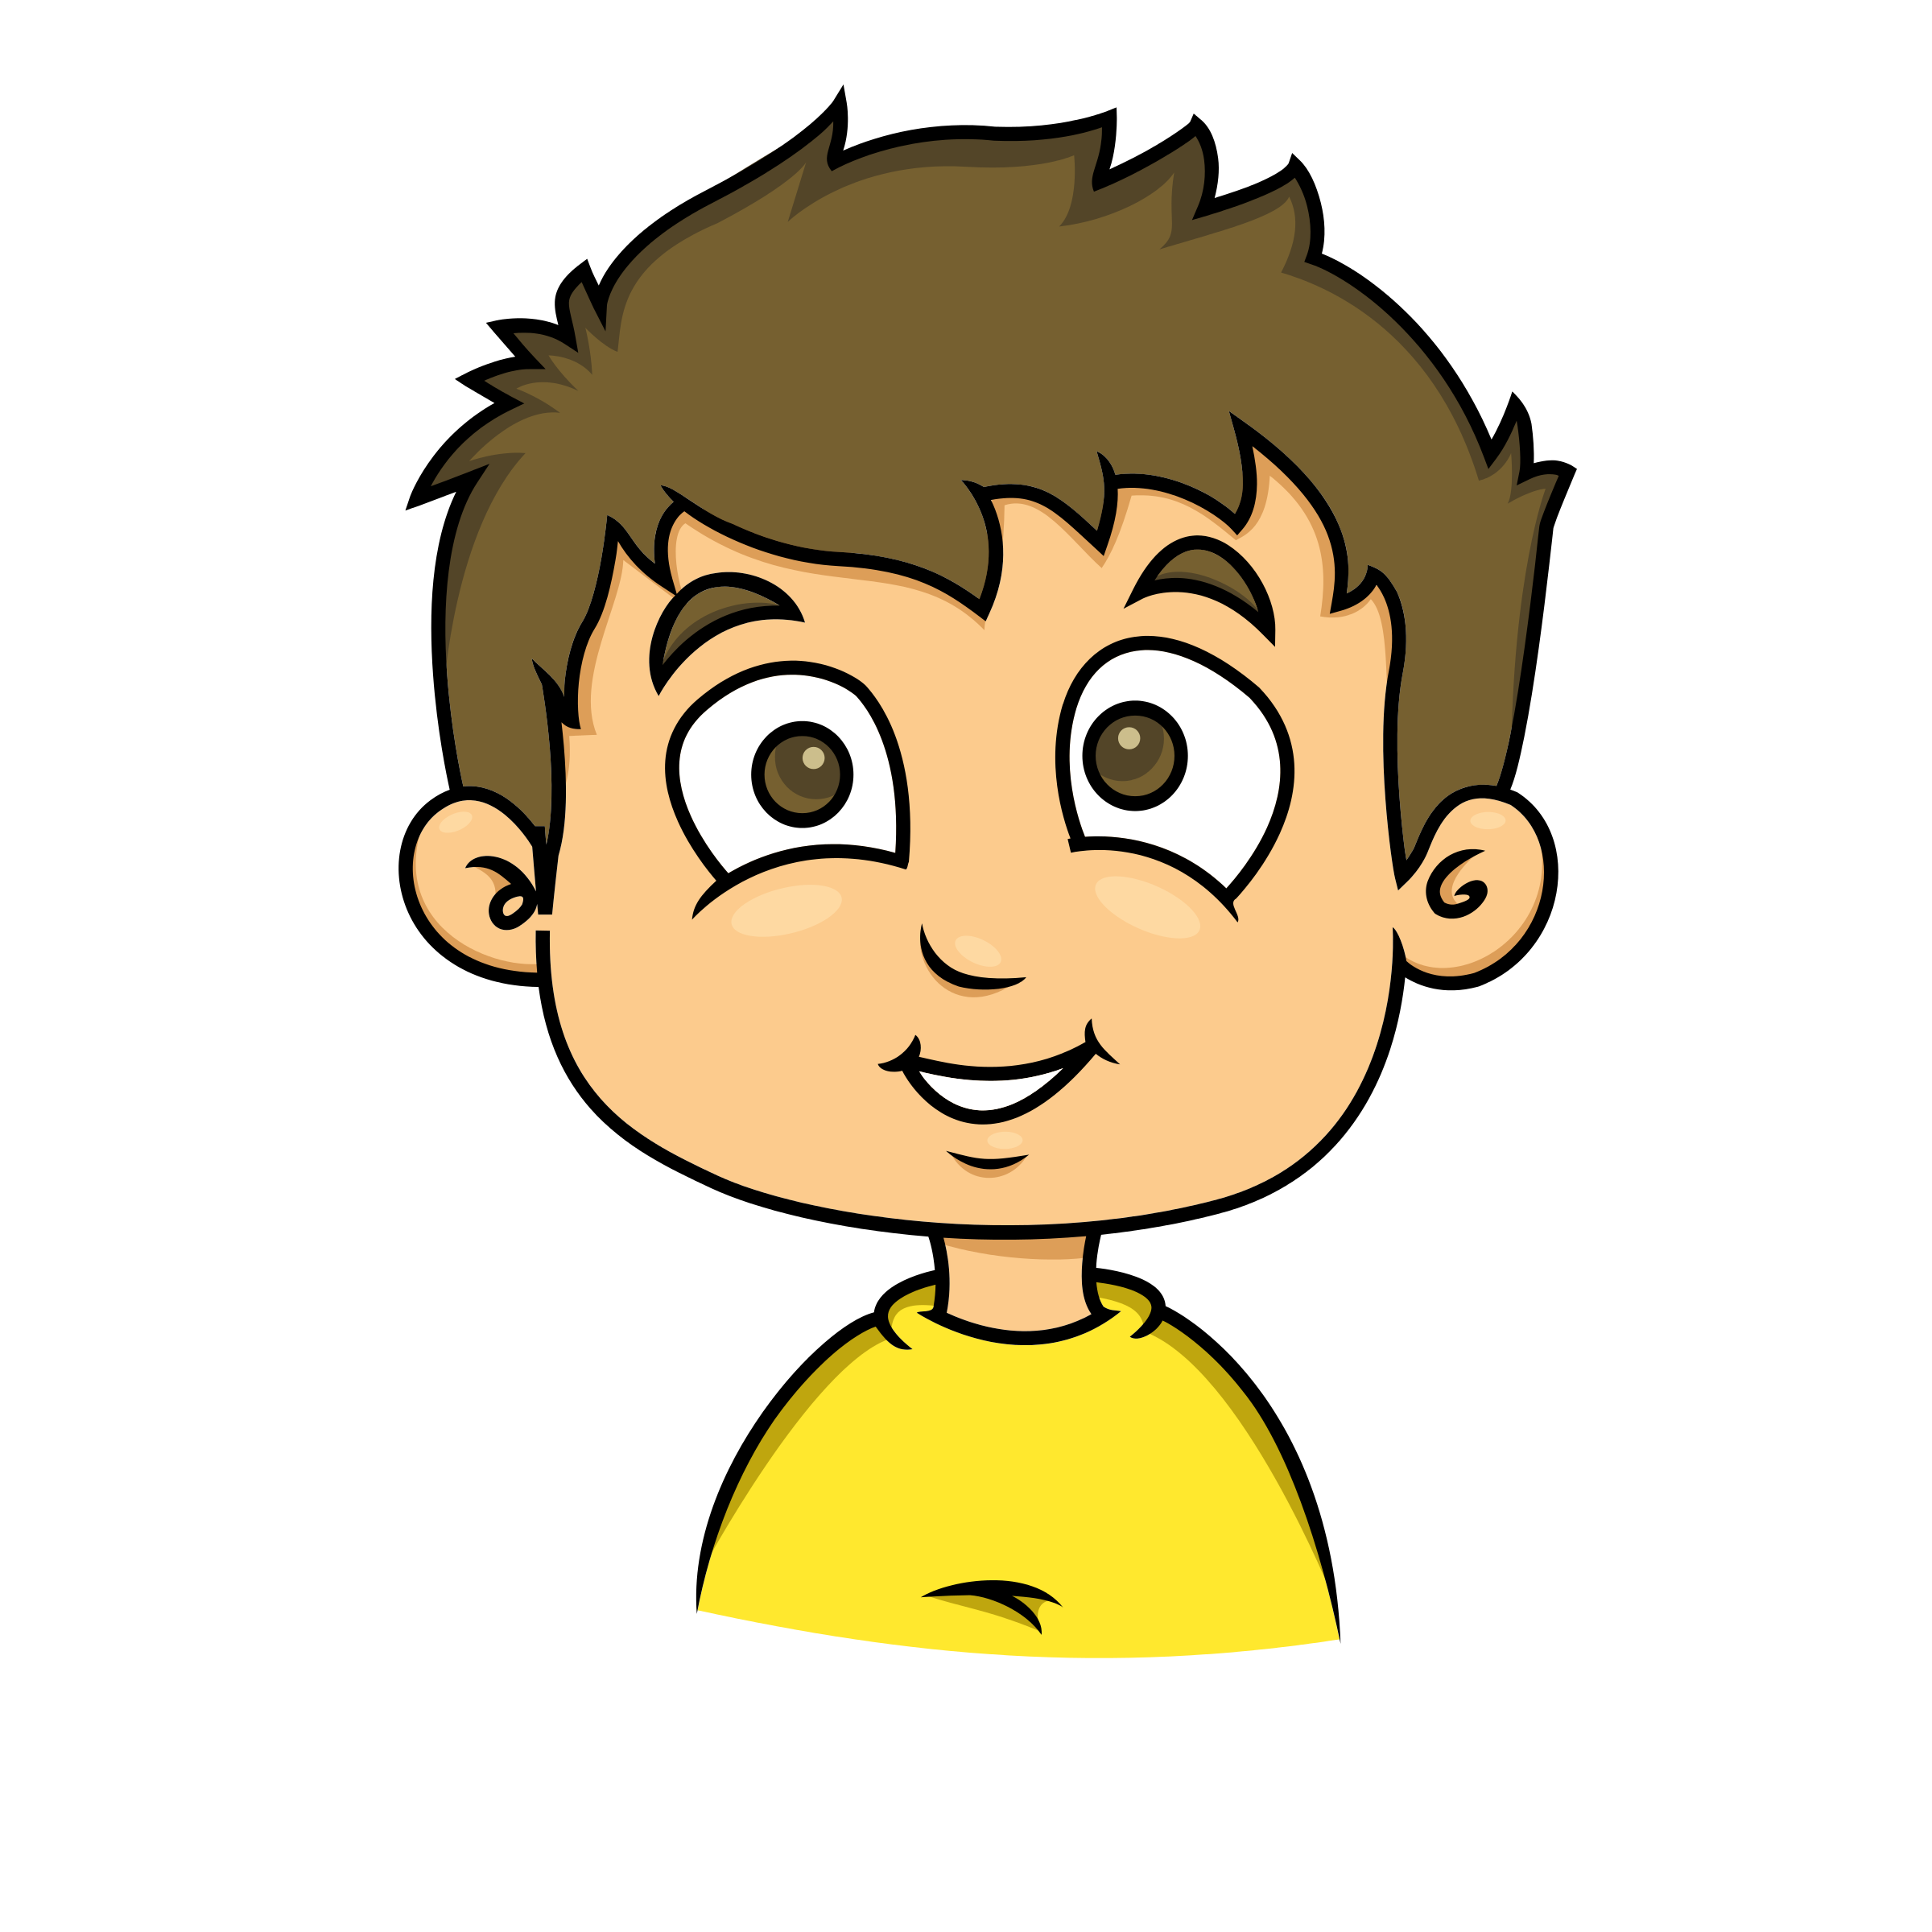 Reflection clipart kid question #6